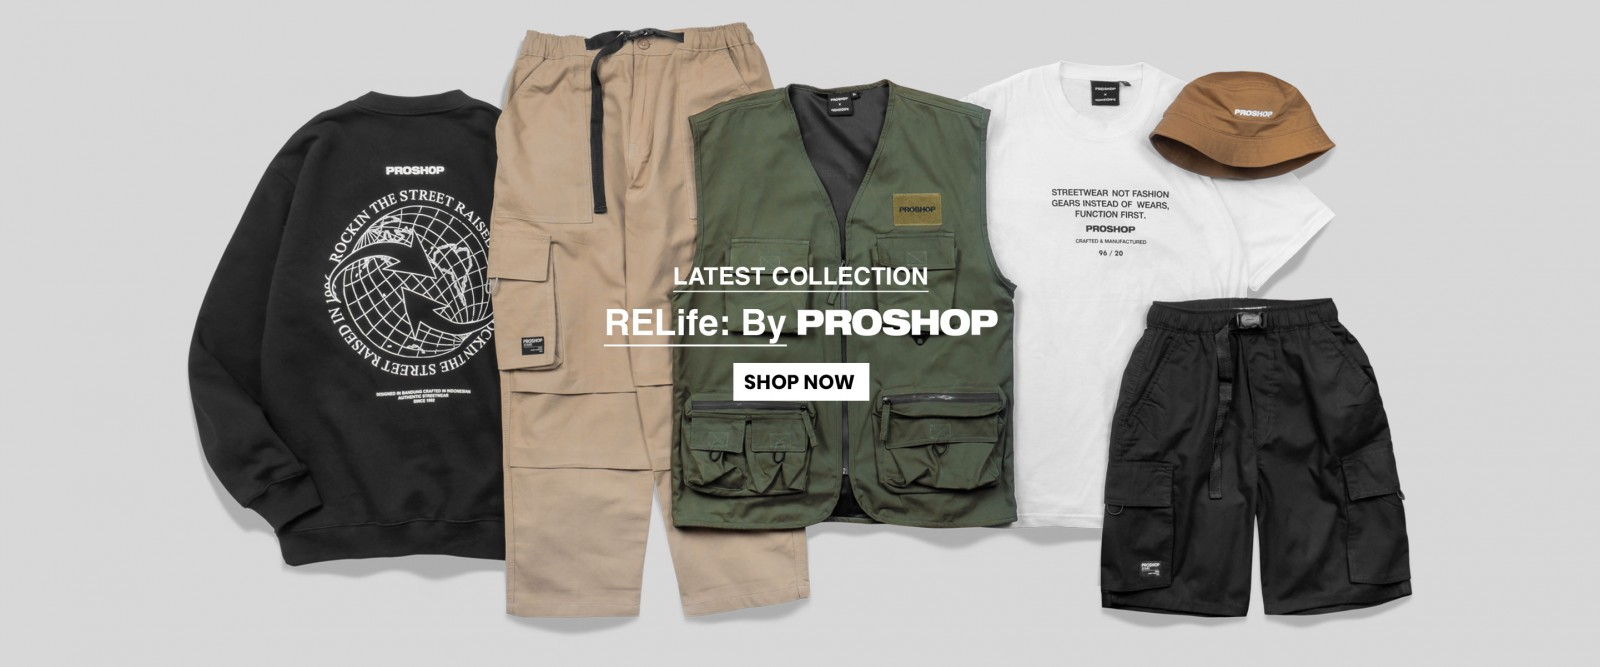 LATEST COLLECTION RELIFE